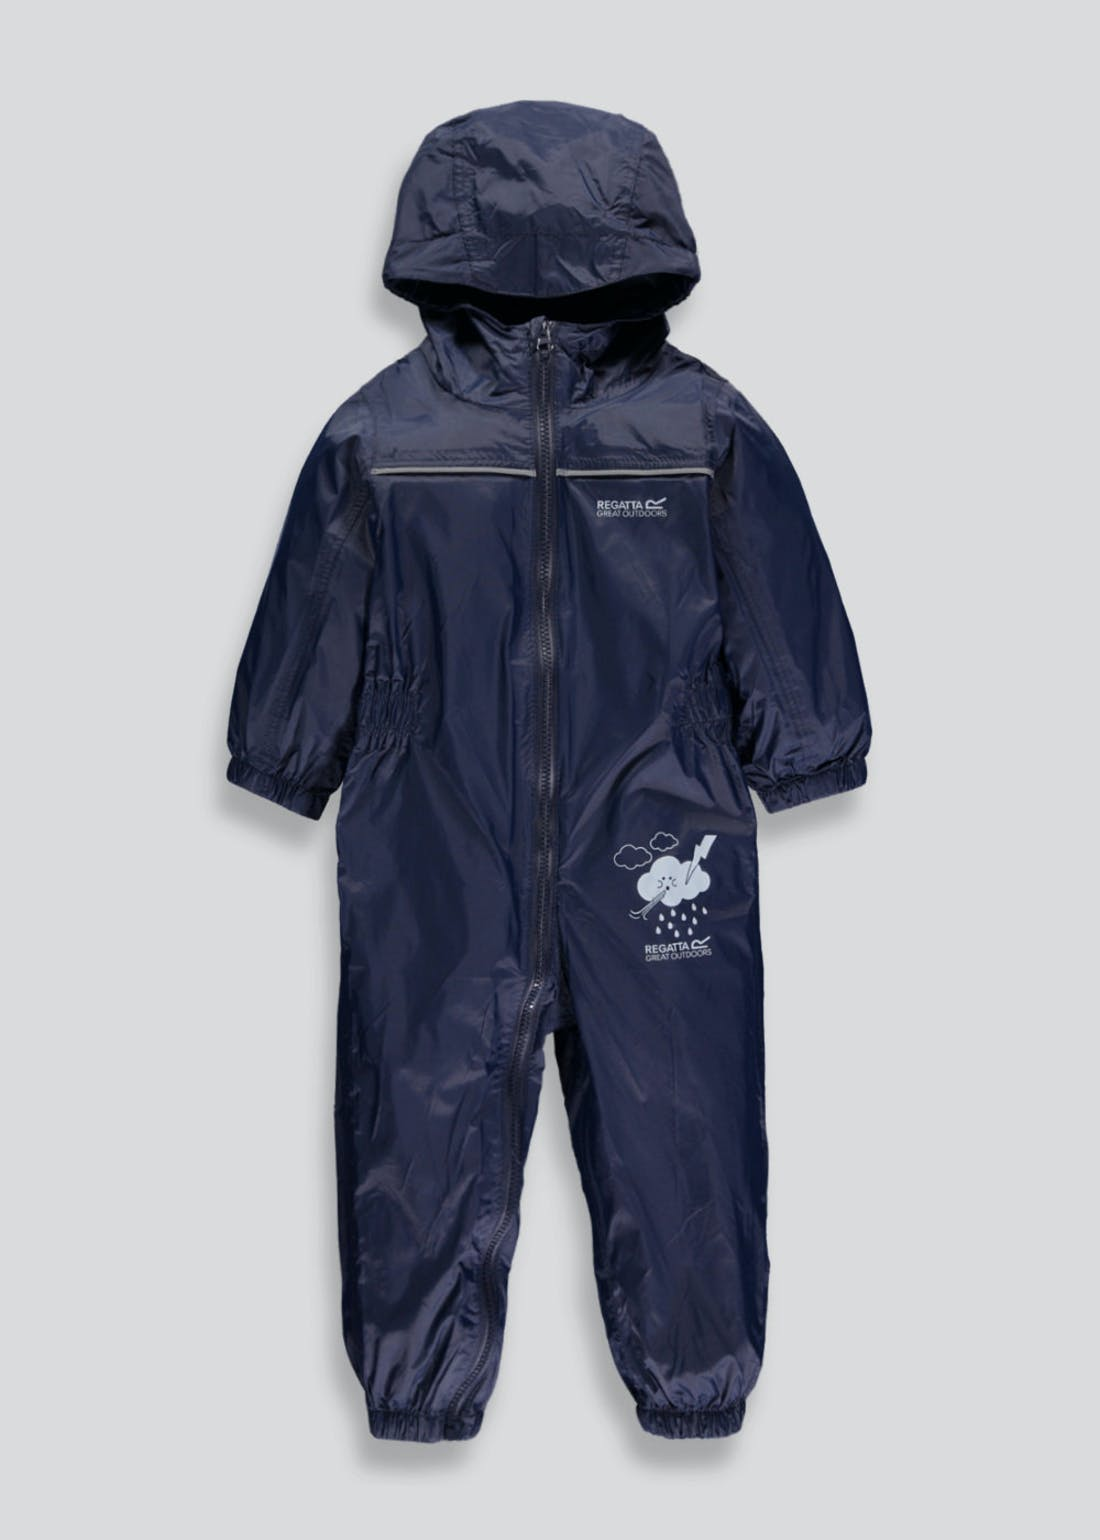 Regatta Navy Waterproof Puddle Suit (12mths-5yrs)